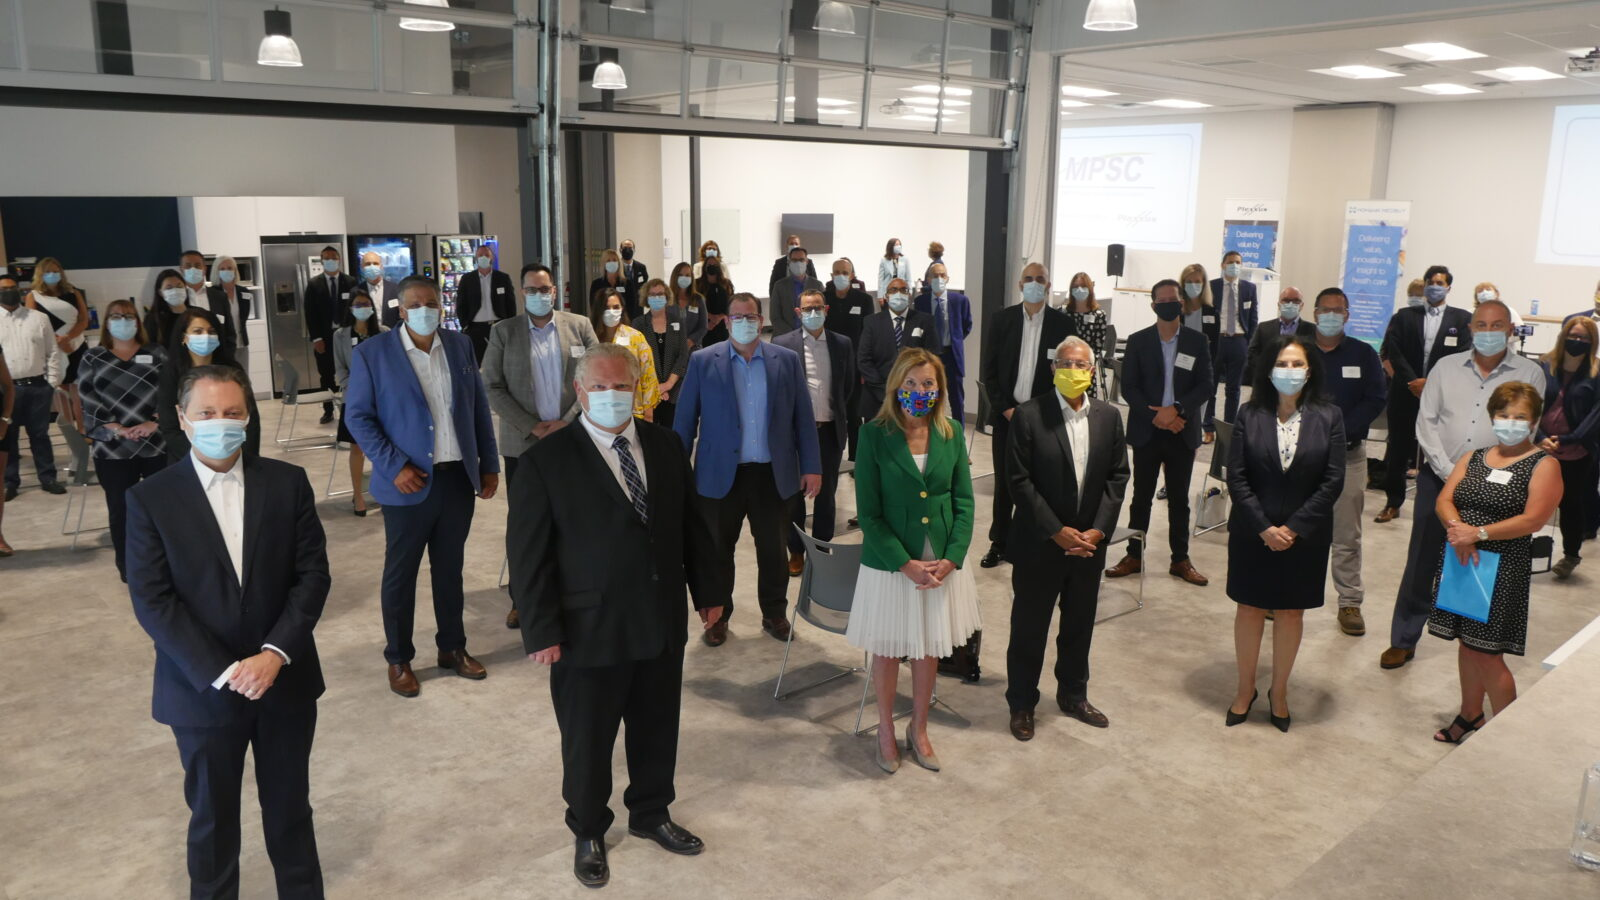 Premier Doug Ford and team wearing masks while visiting Mohawk Medbuy and Plexxus